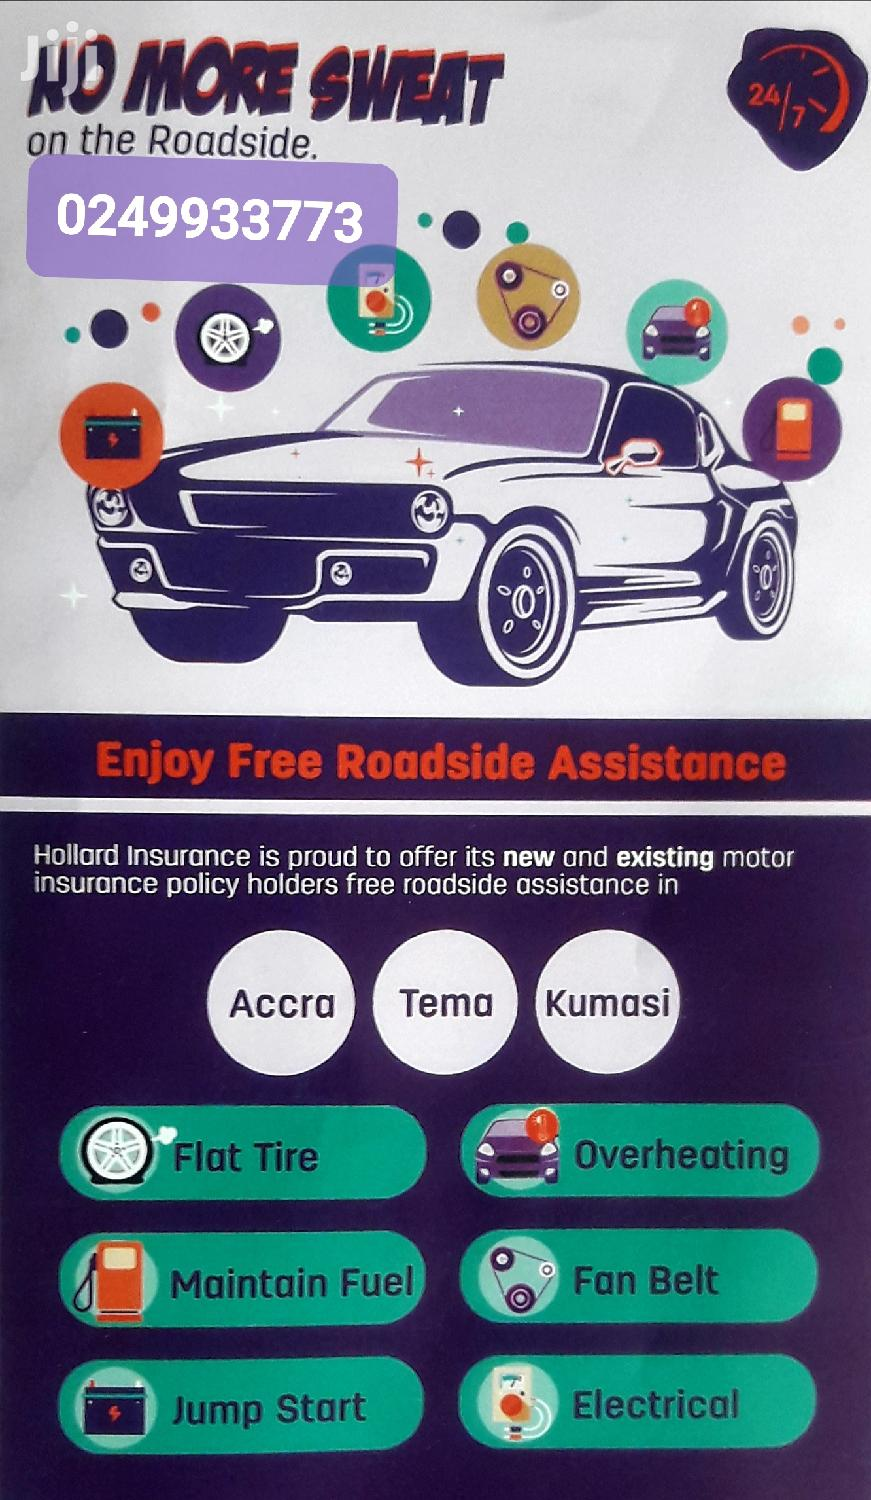 Vehicle Insurance | Other Services for sale in Accra Metropolitan, Greater Accra, Ghana